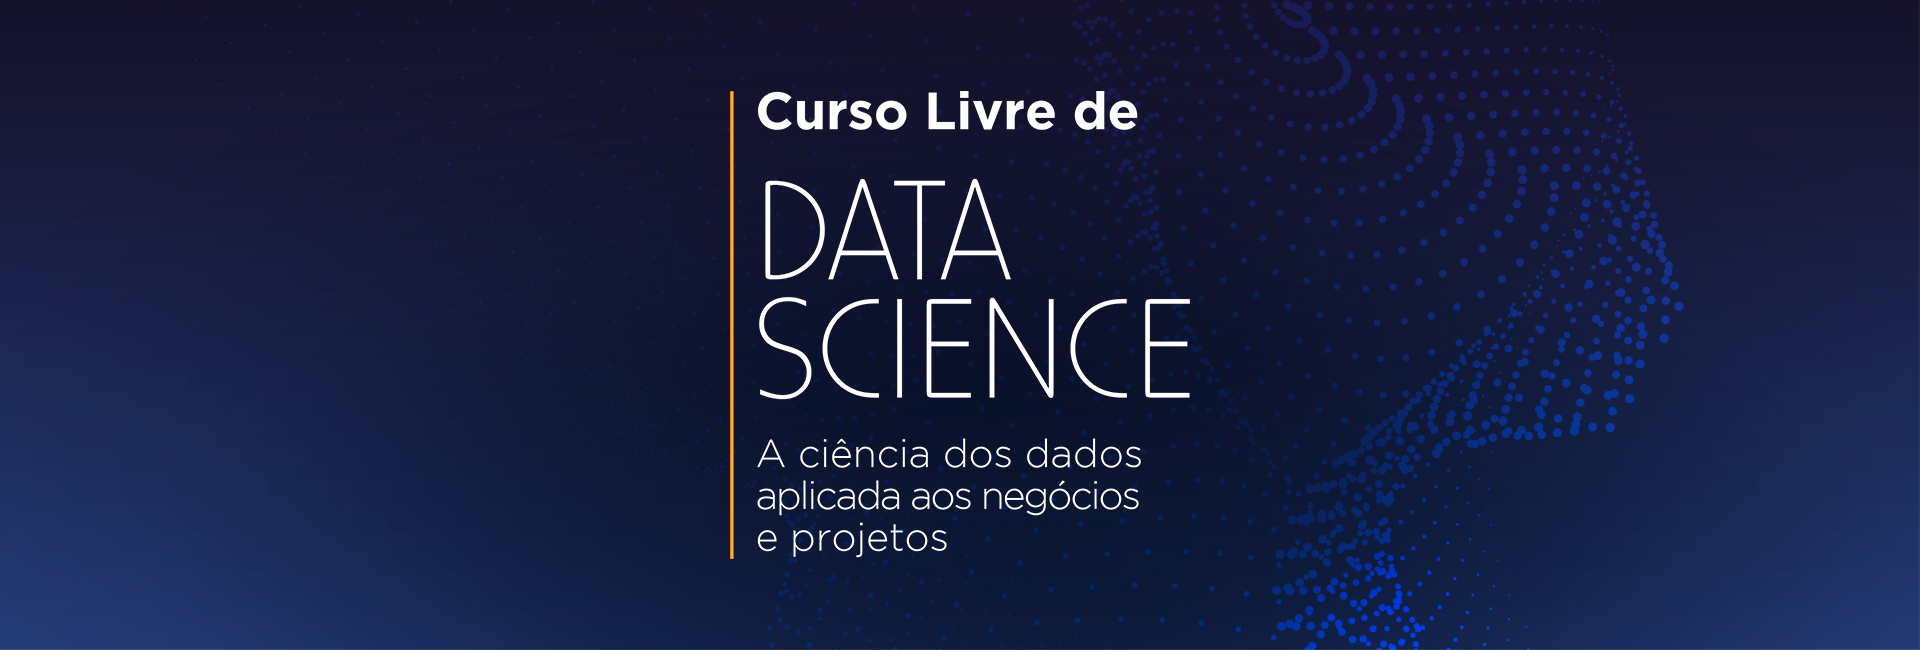 https://eseg.edu.br/media/bancos/data_science_1.jpg